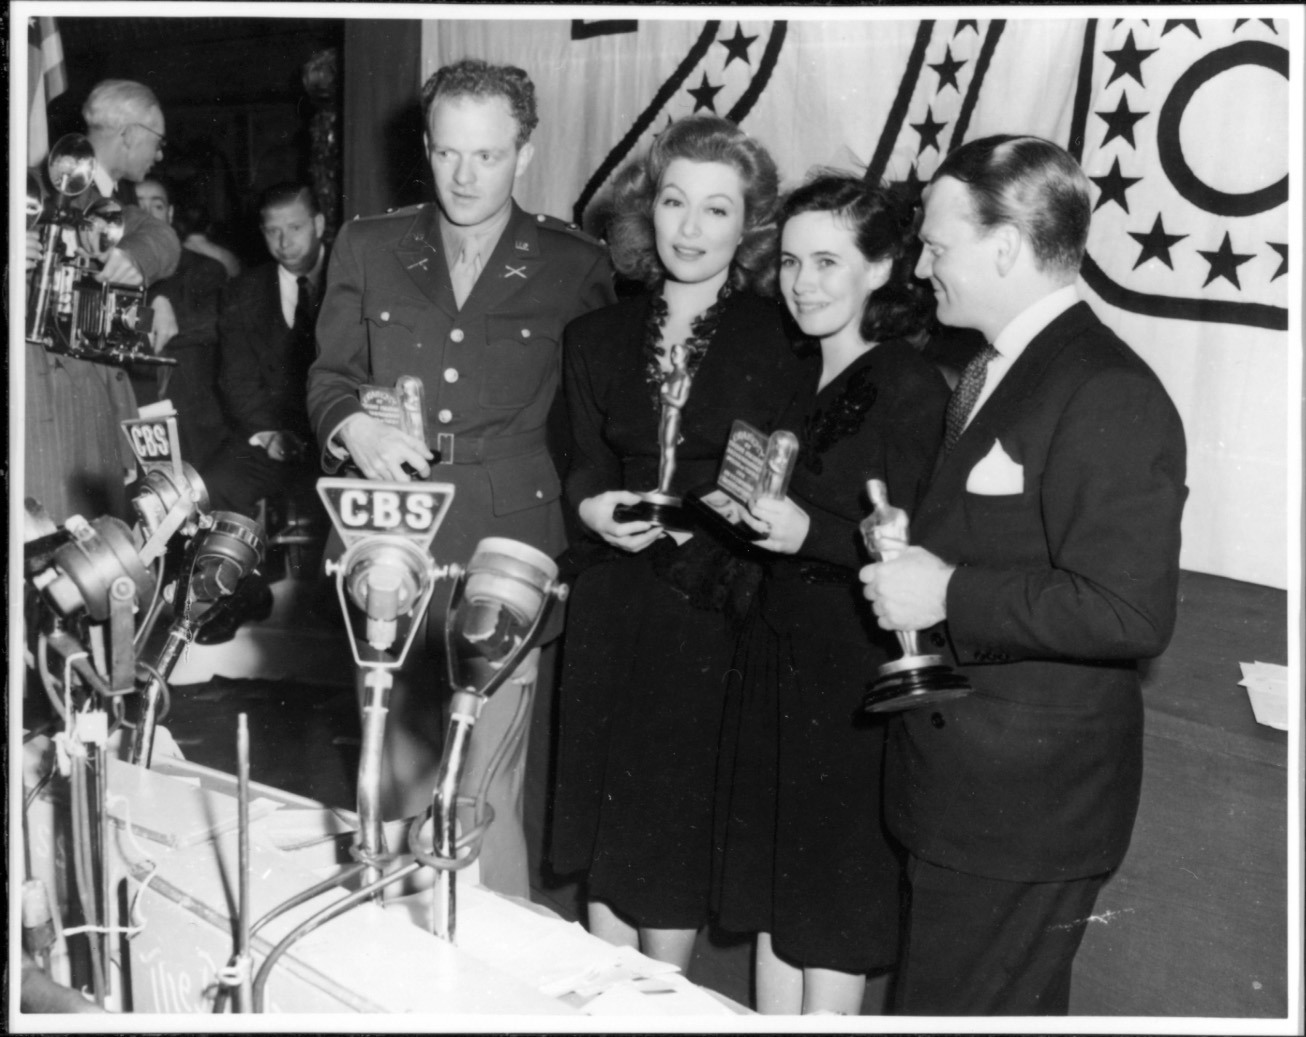 Greer Garson at the Academy Awards